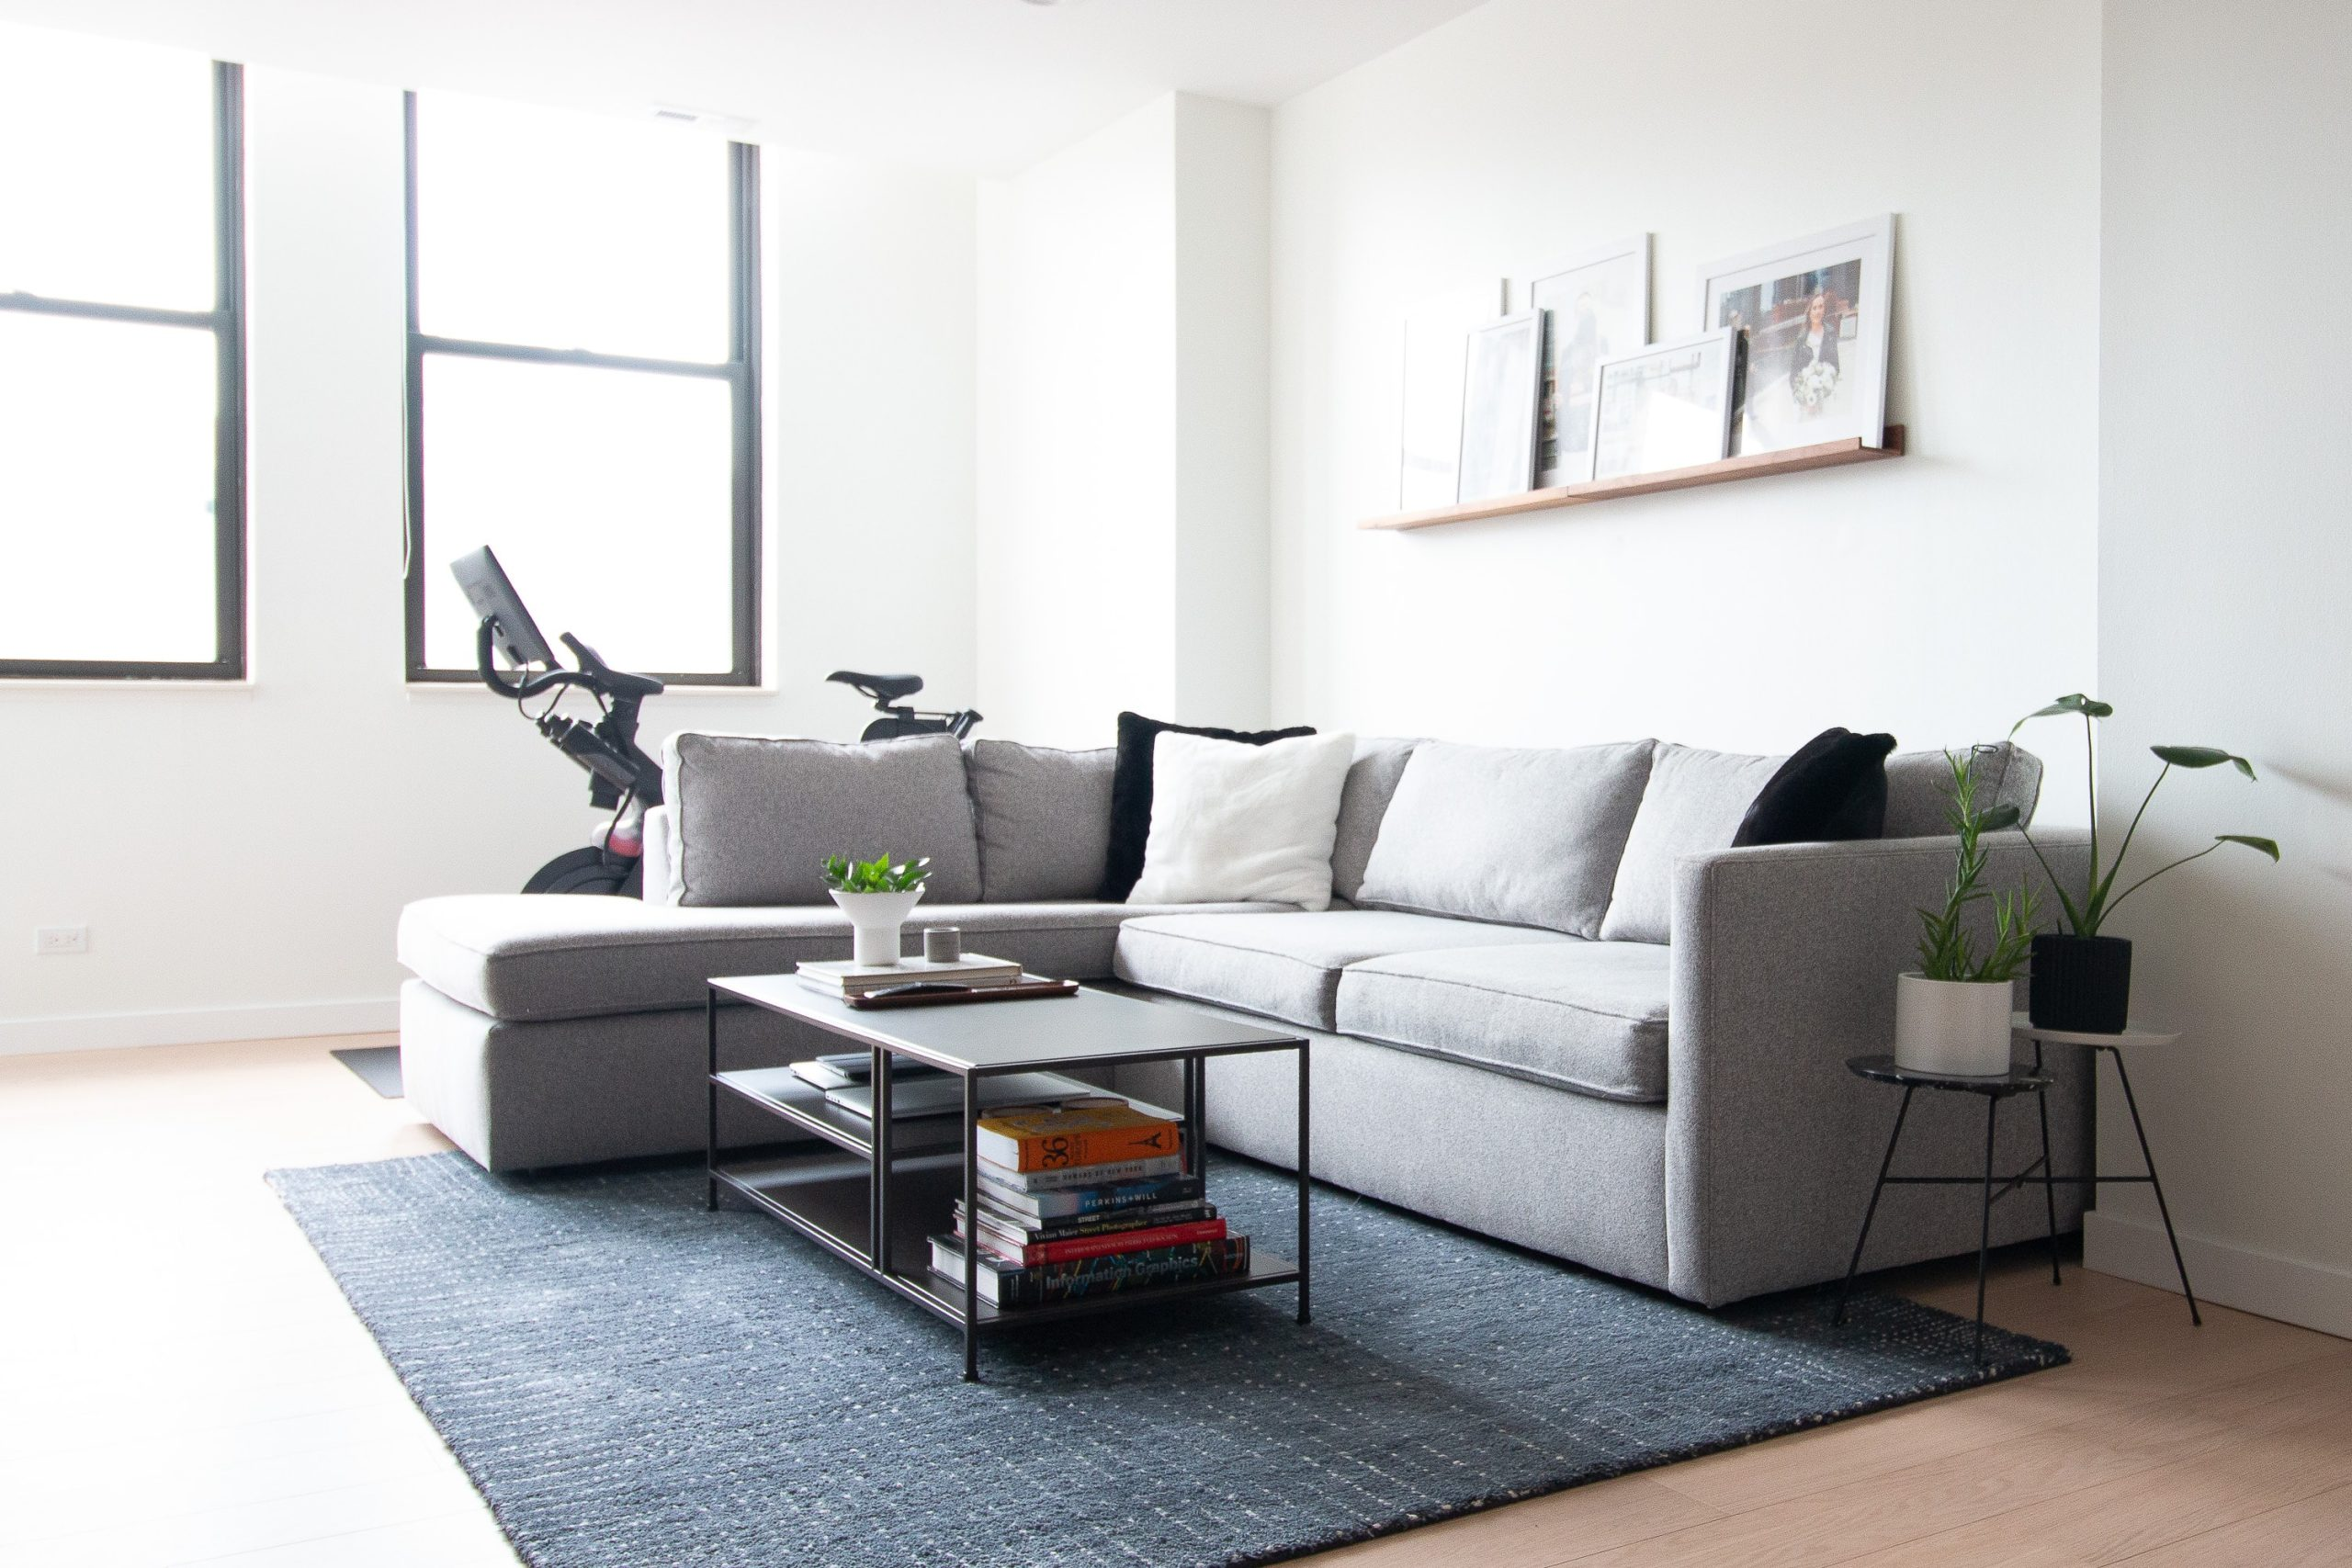 Chicago condo before and after